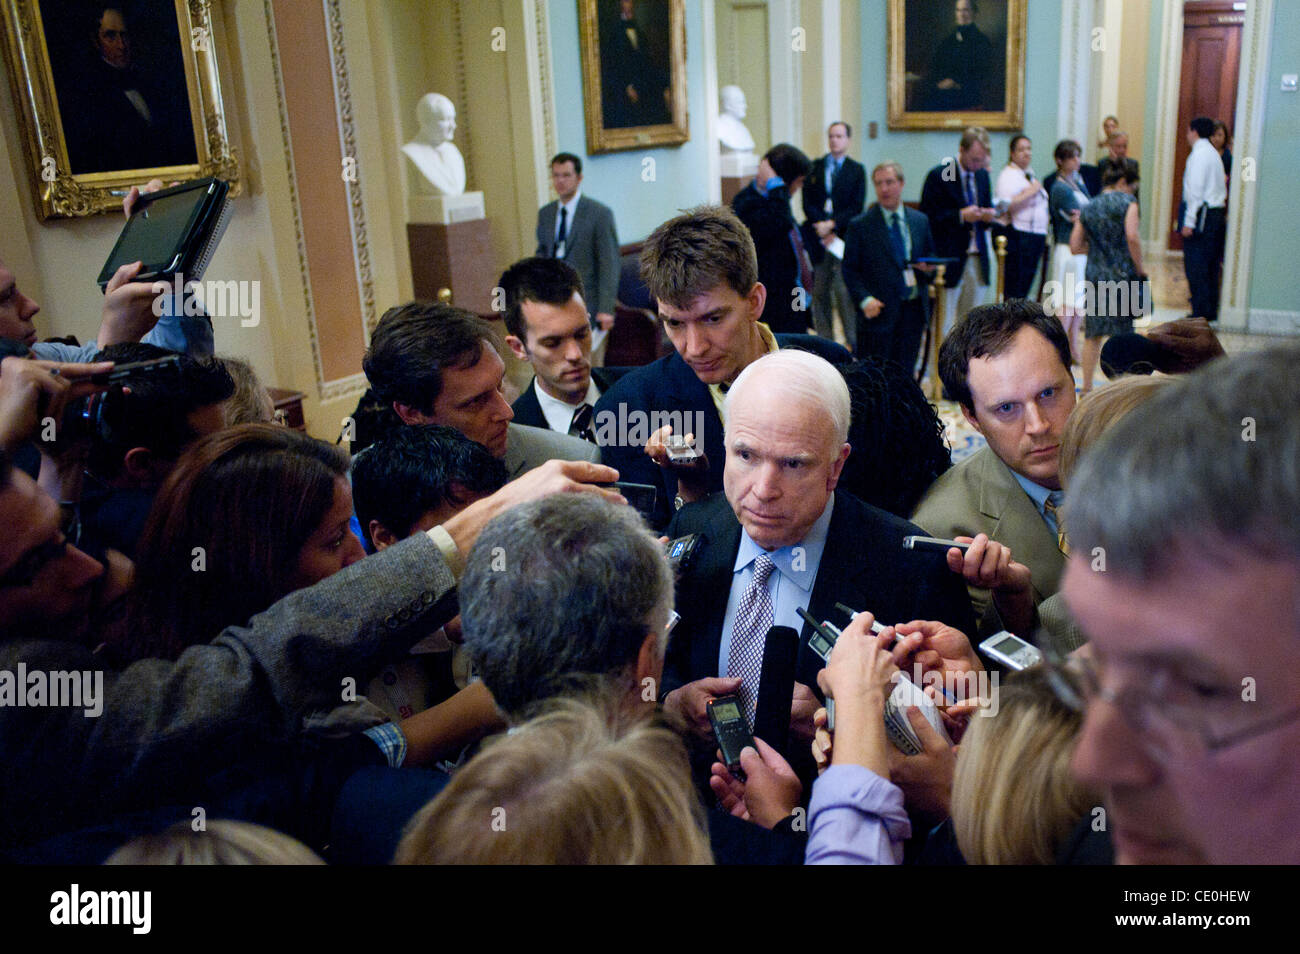 Aug. 1, 2011 - Washington, District of Columbia, U.S. - Senator JOHN MCCAIN (R-AZ) speaks with reporters following - Stock Image